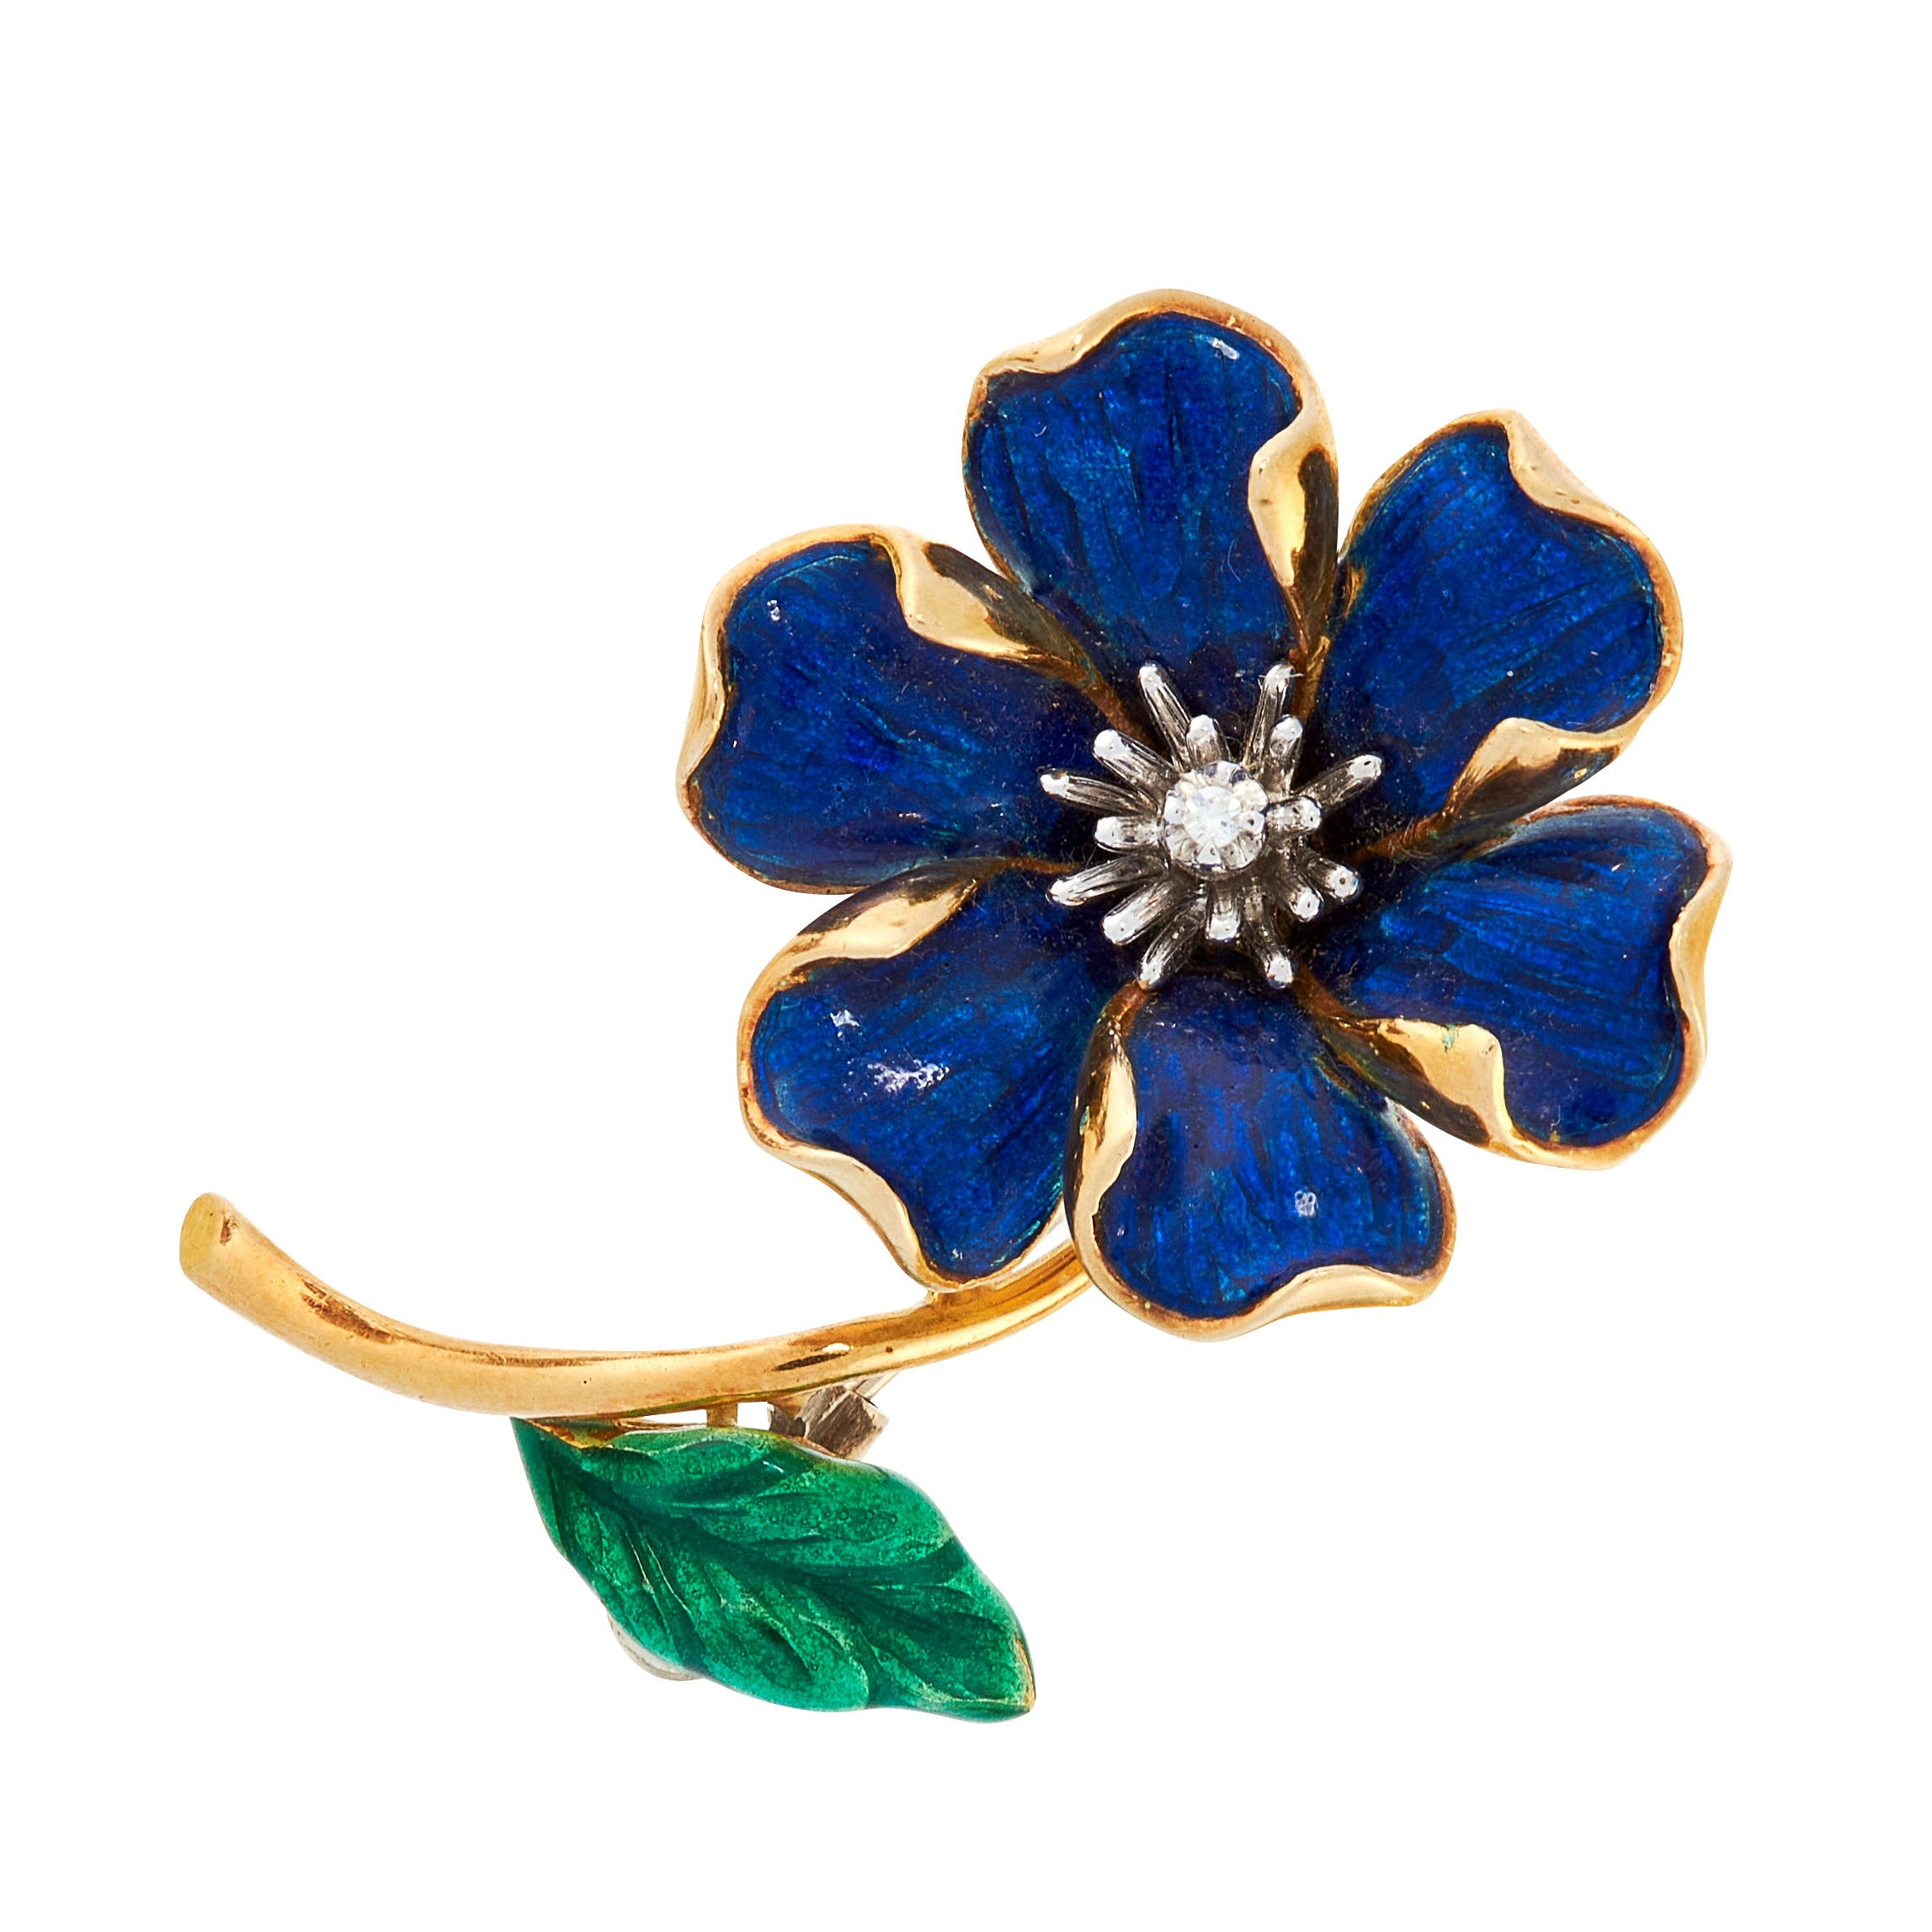 A VINTAGE ENAMEL AND DIAMOND FLOWER BROOCH in 18ct yellow gold, designed as a flower, set with a